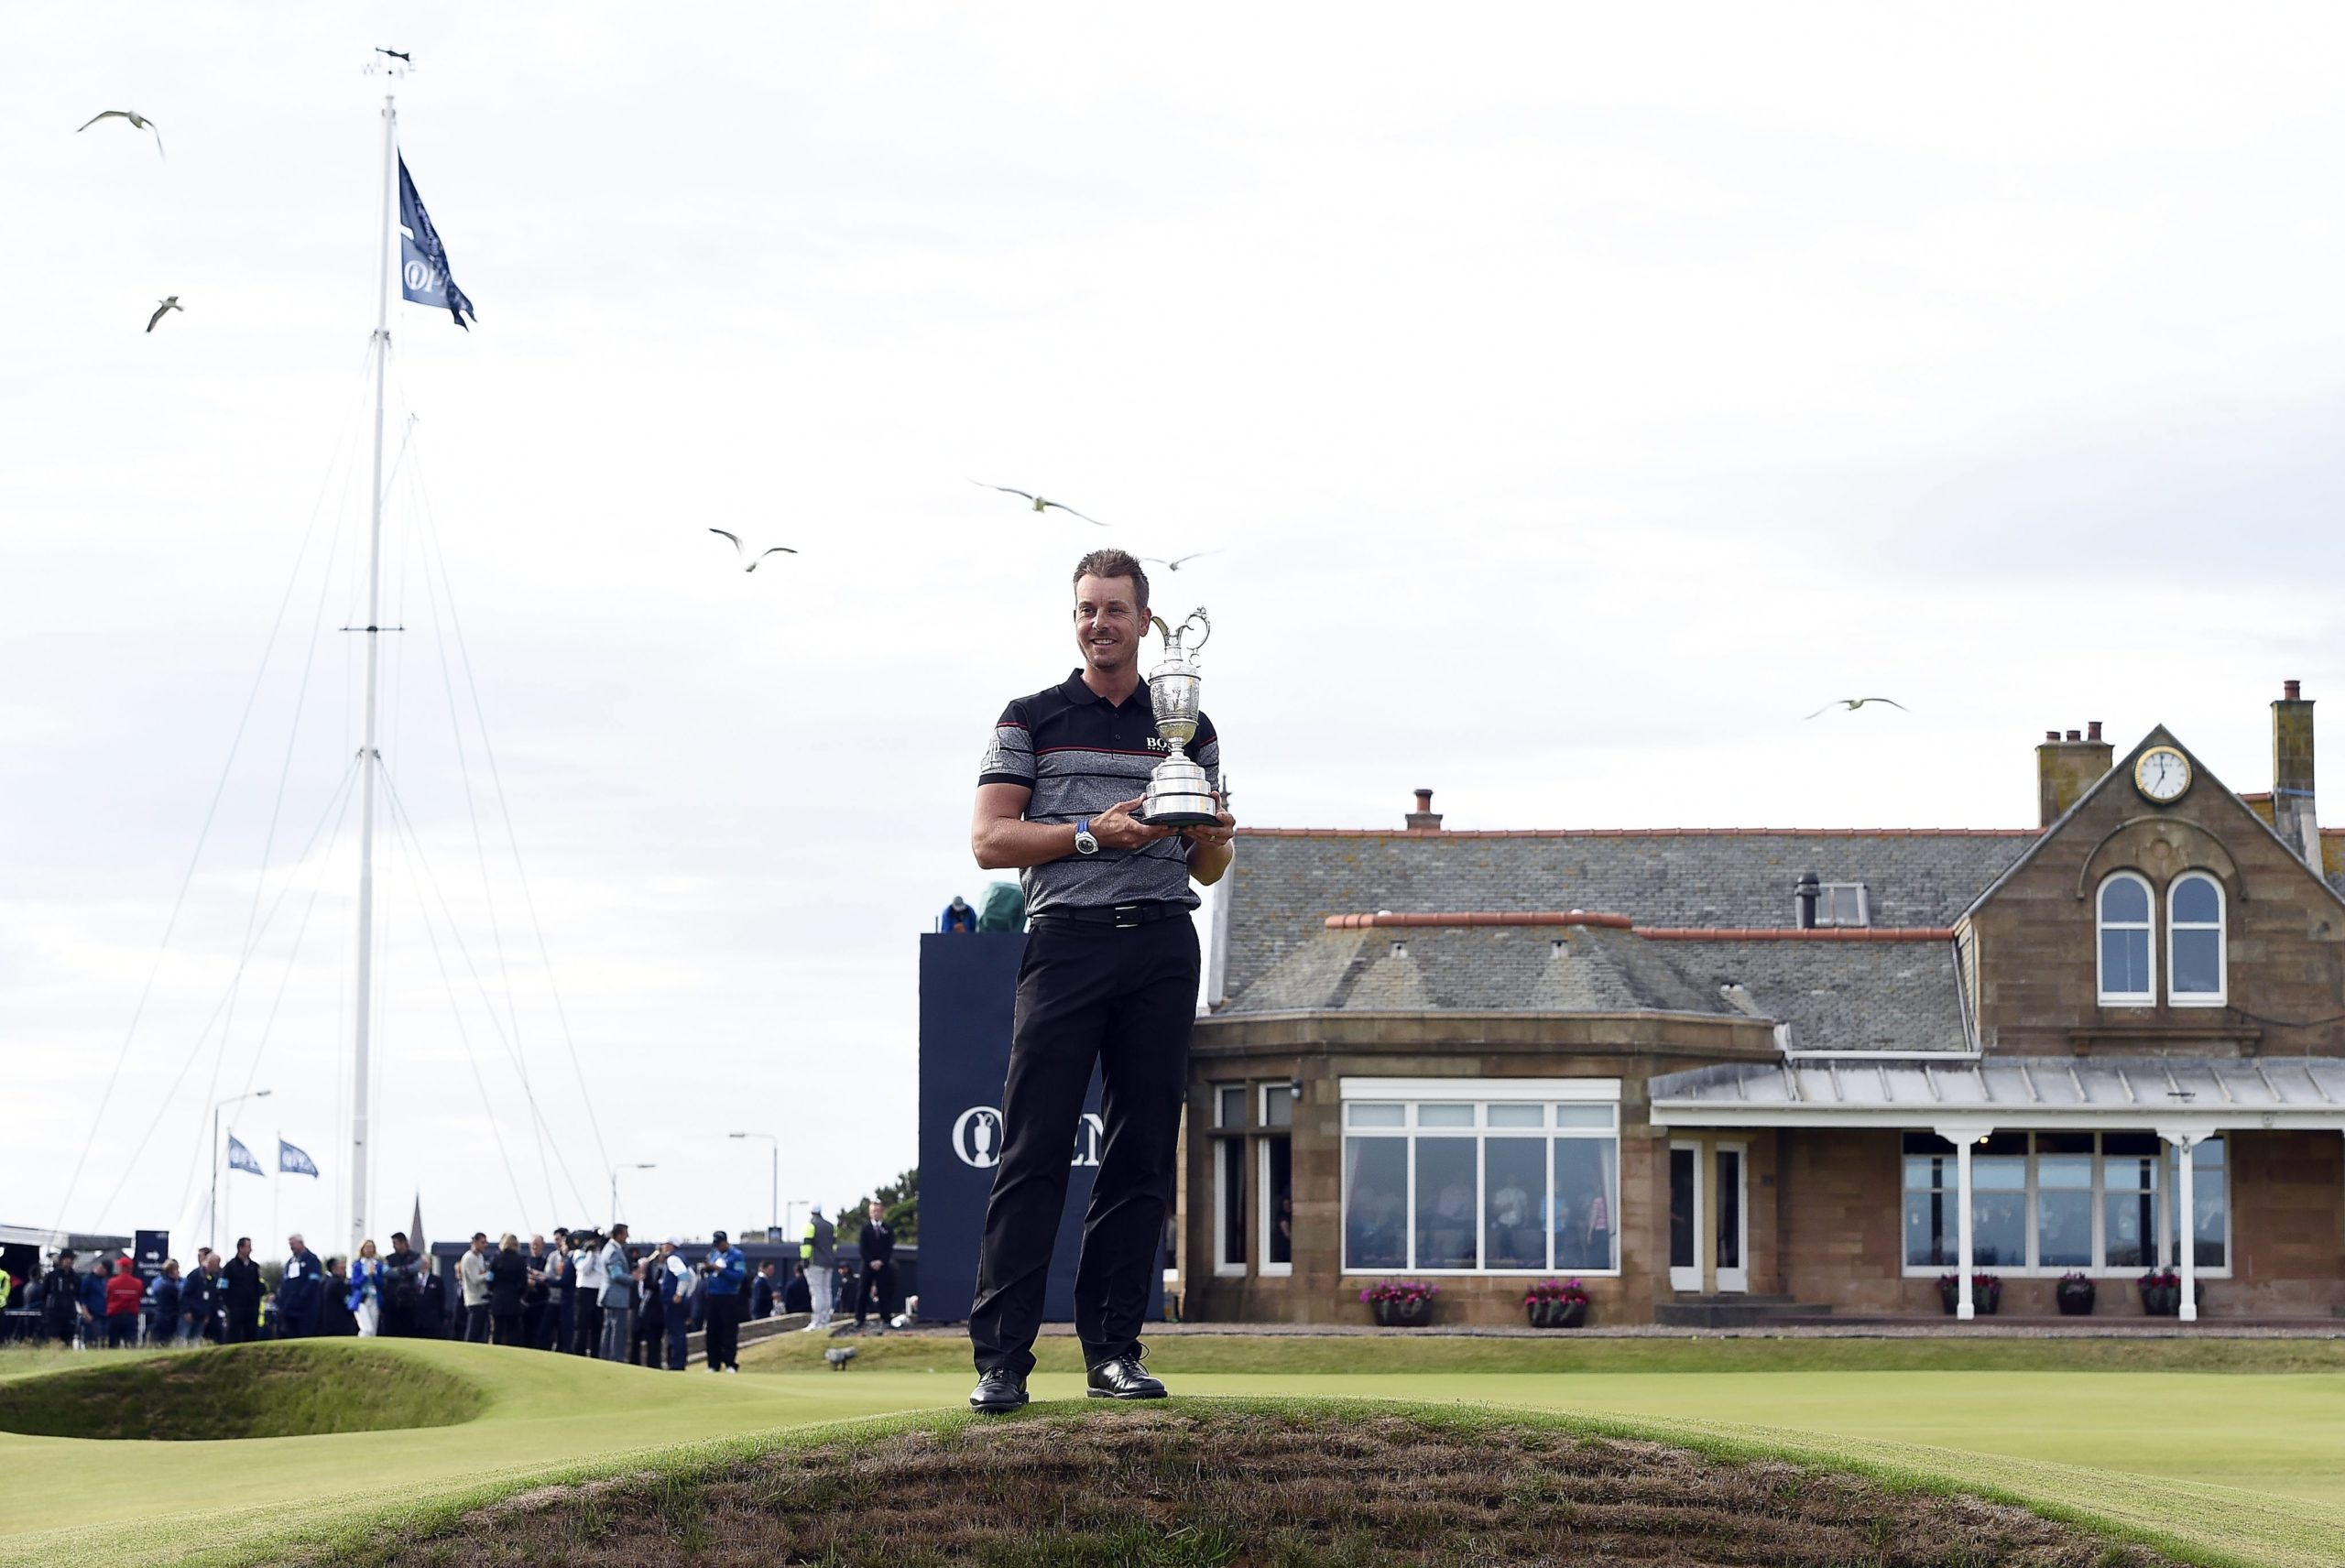 Henrik Stenson holds the Claret Jug after winning The 2016 Open in Troon